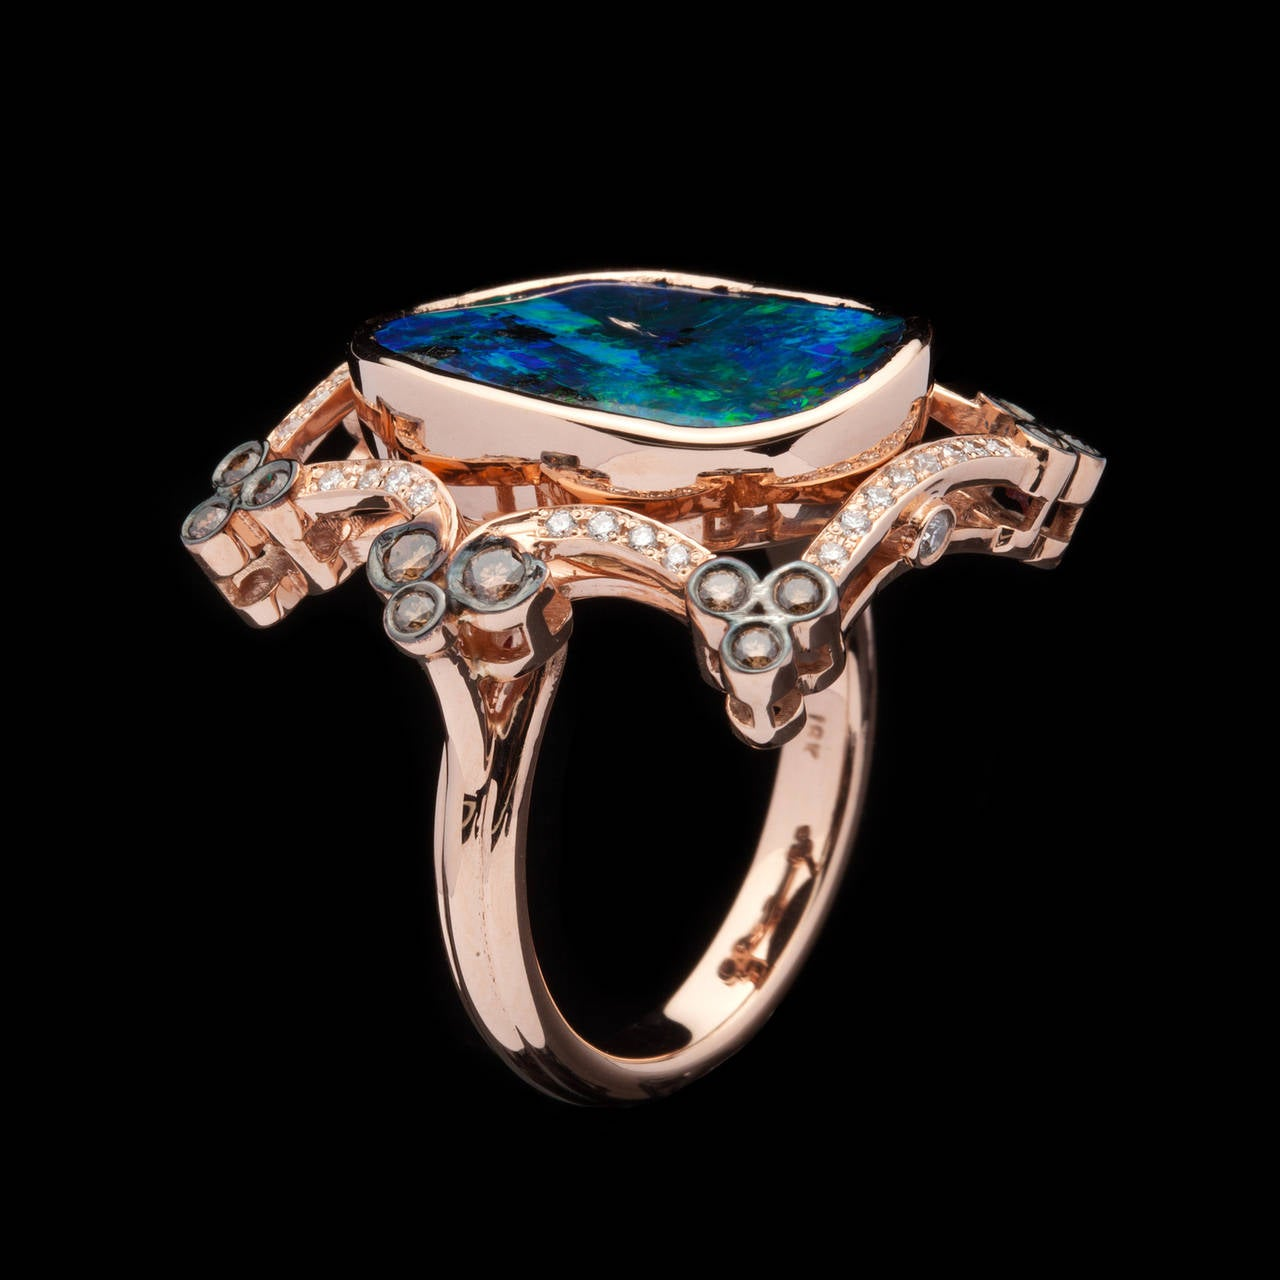 7.23 Carat Black Opal Diamond Gold Cocktail Ring In Excellent Condition For Sale In San Francisco, CA